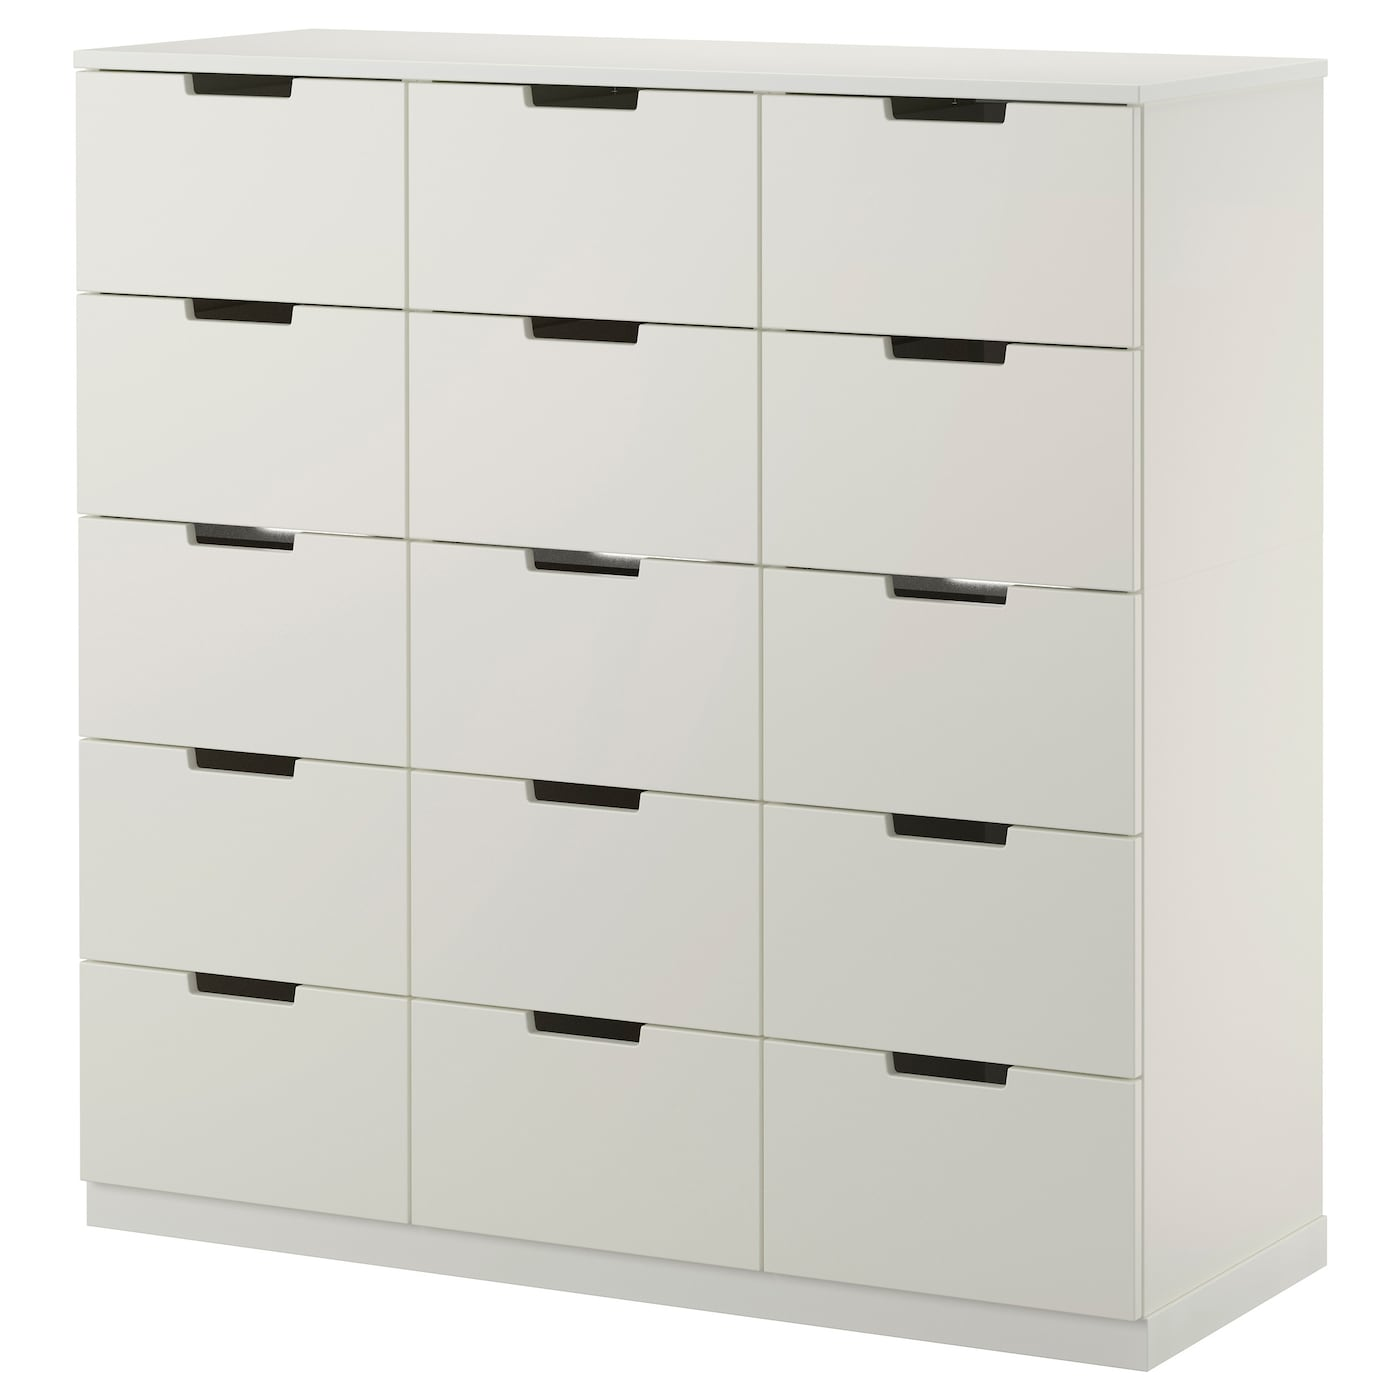 IKEA NORDLI chest of 15 drawers